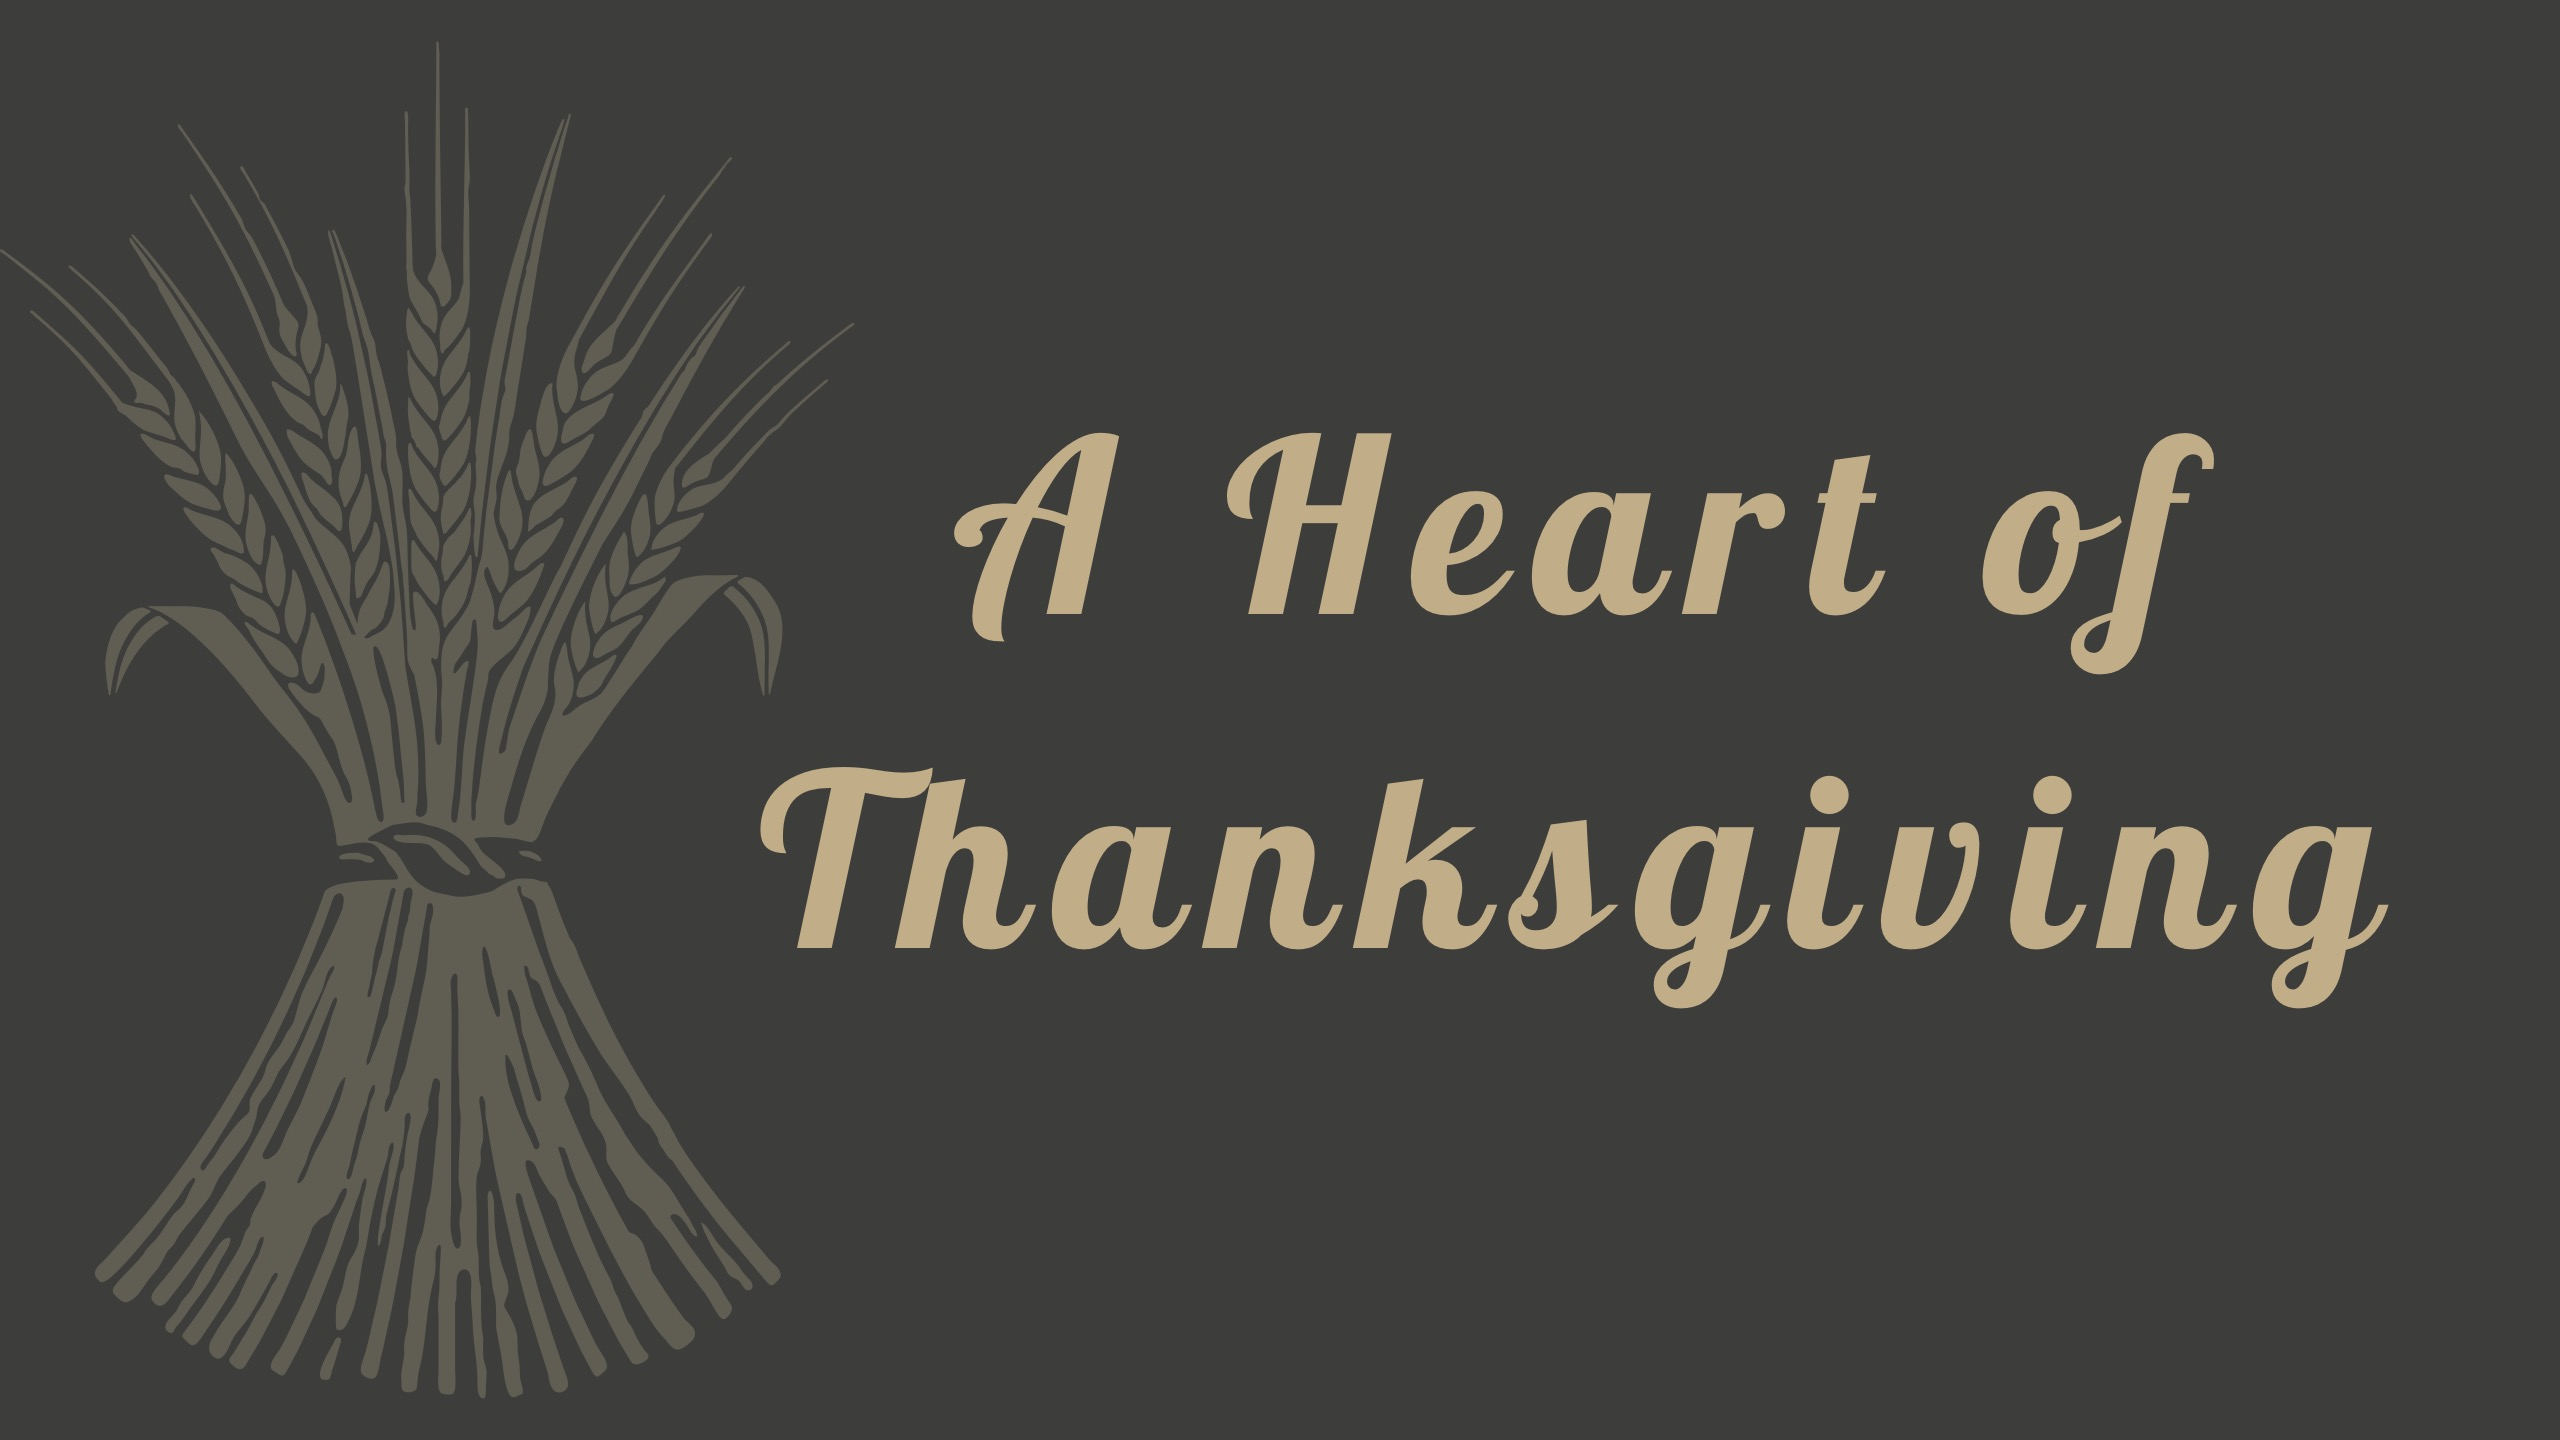 A Heart of Thanksgiving Image